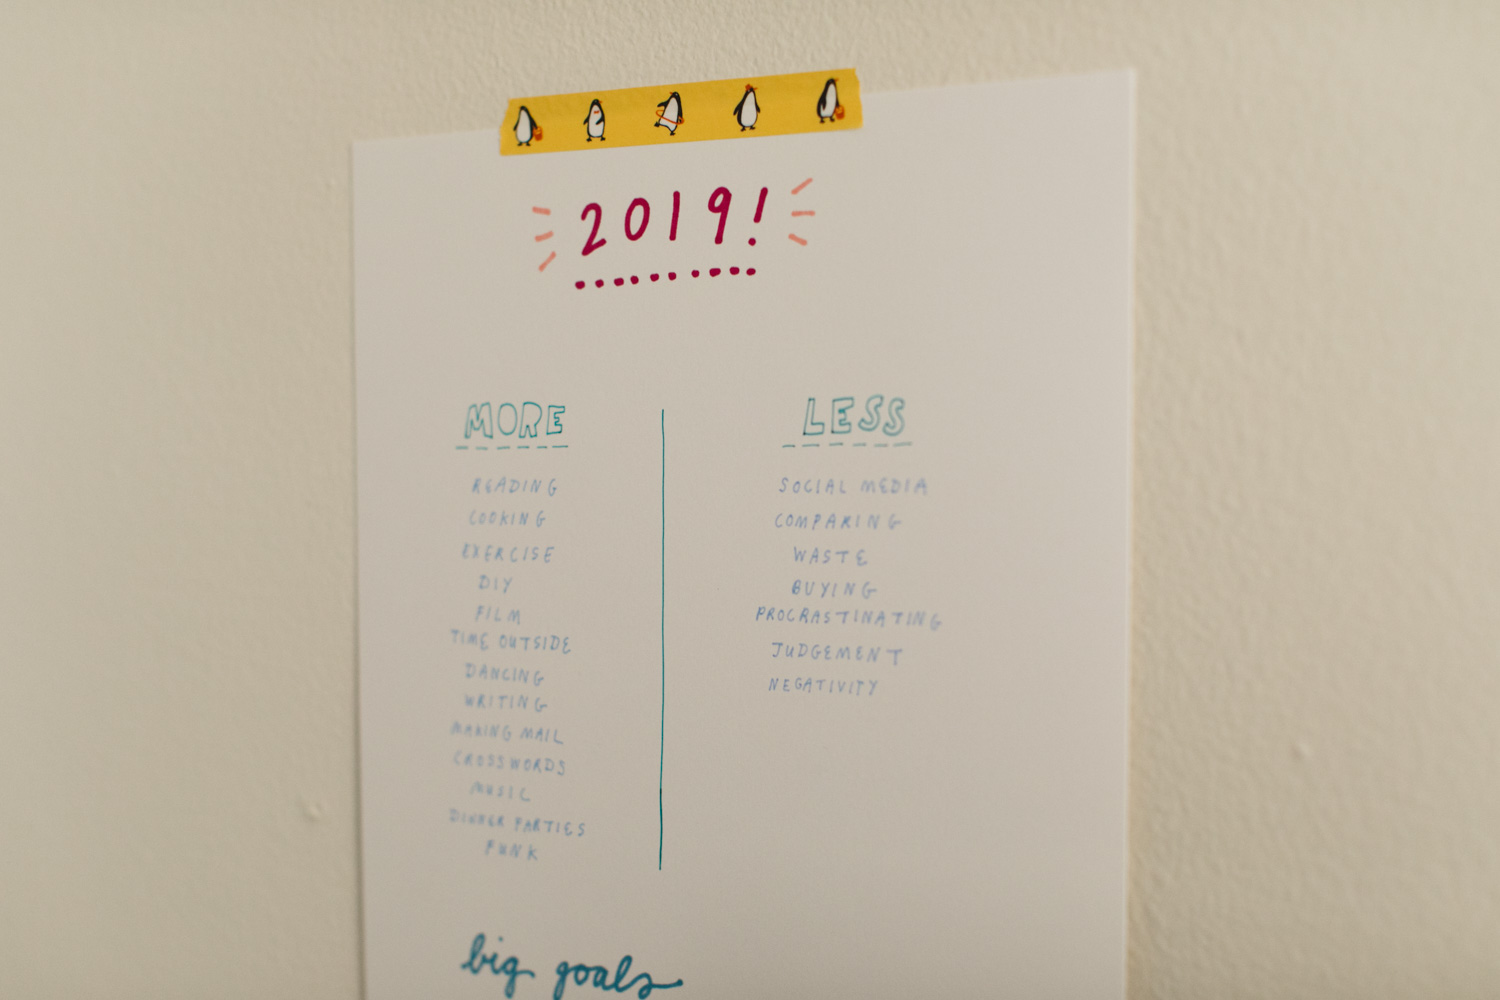 A list of goals and resolutions, hanging on the wall